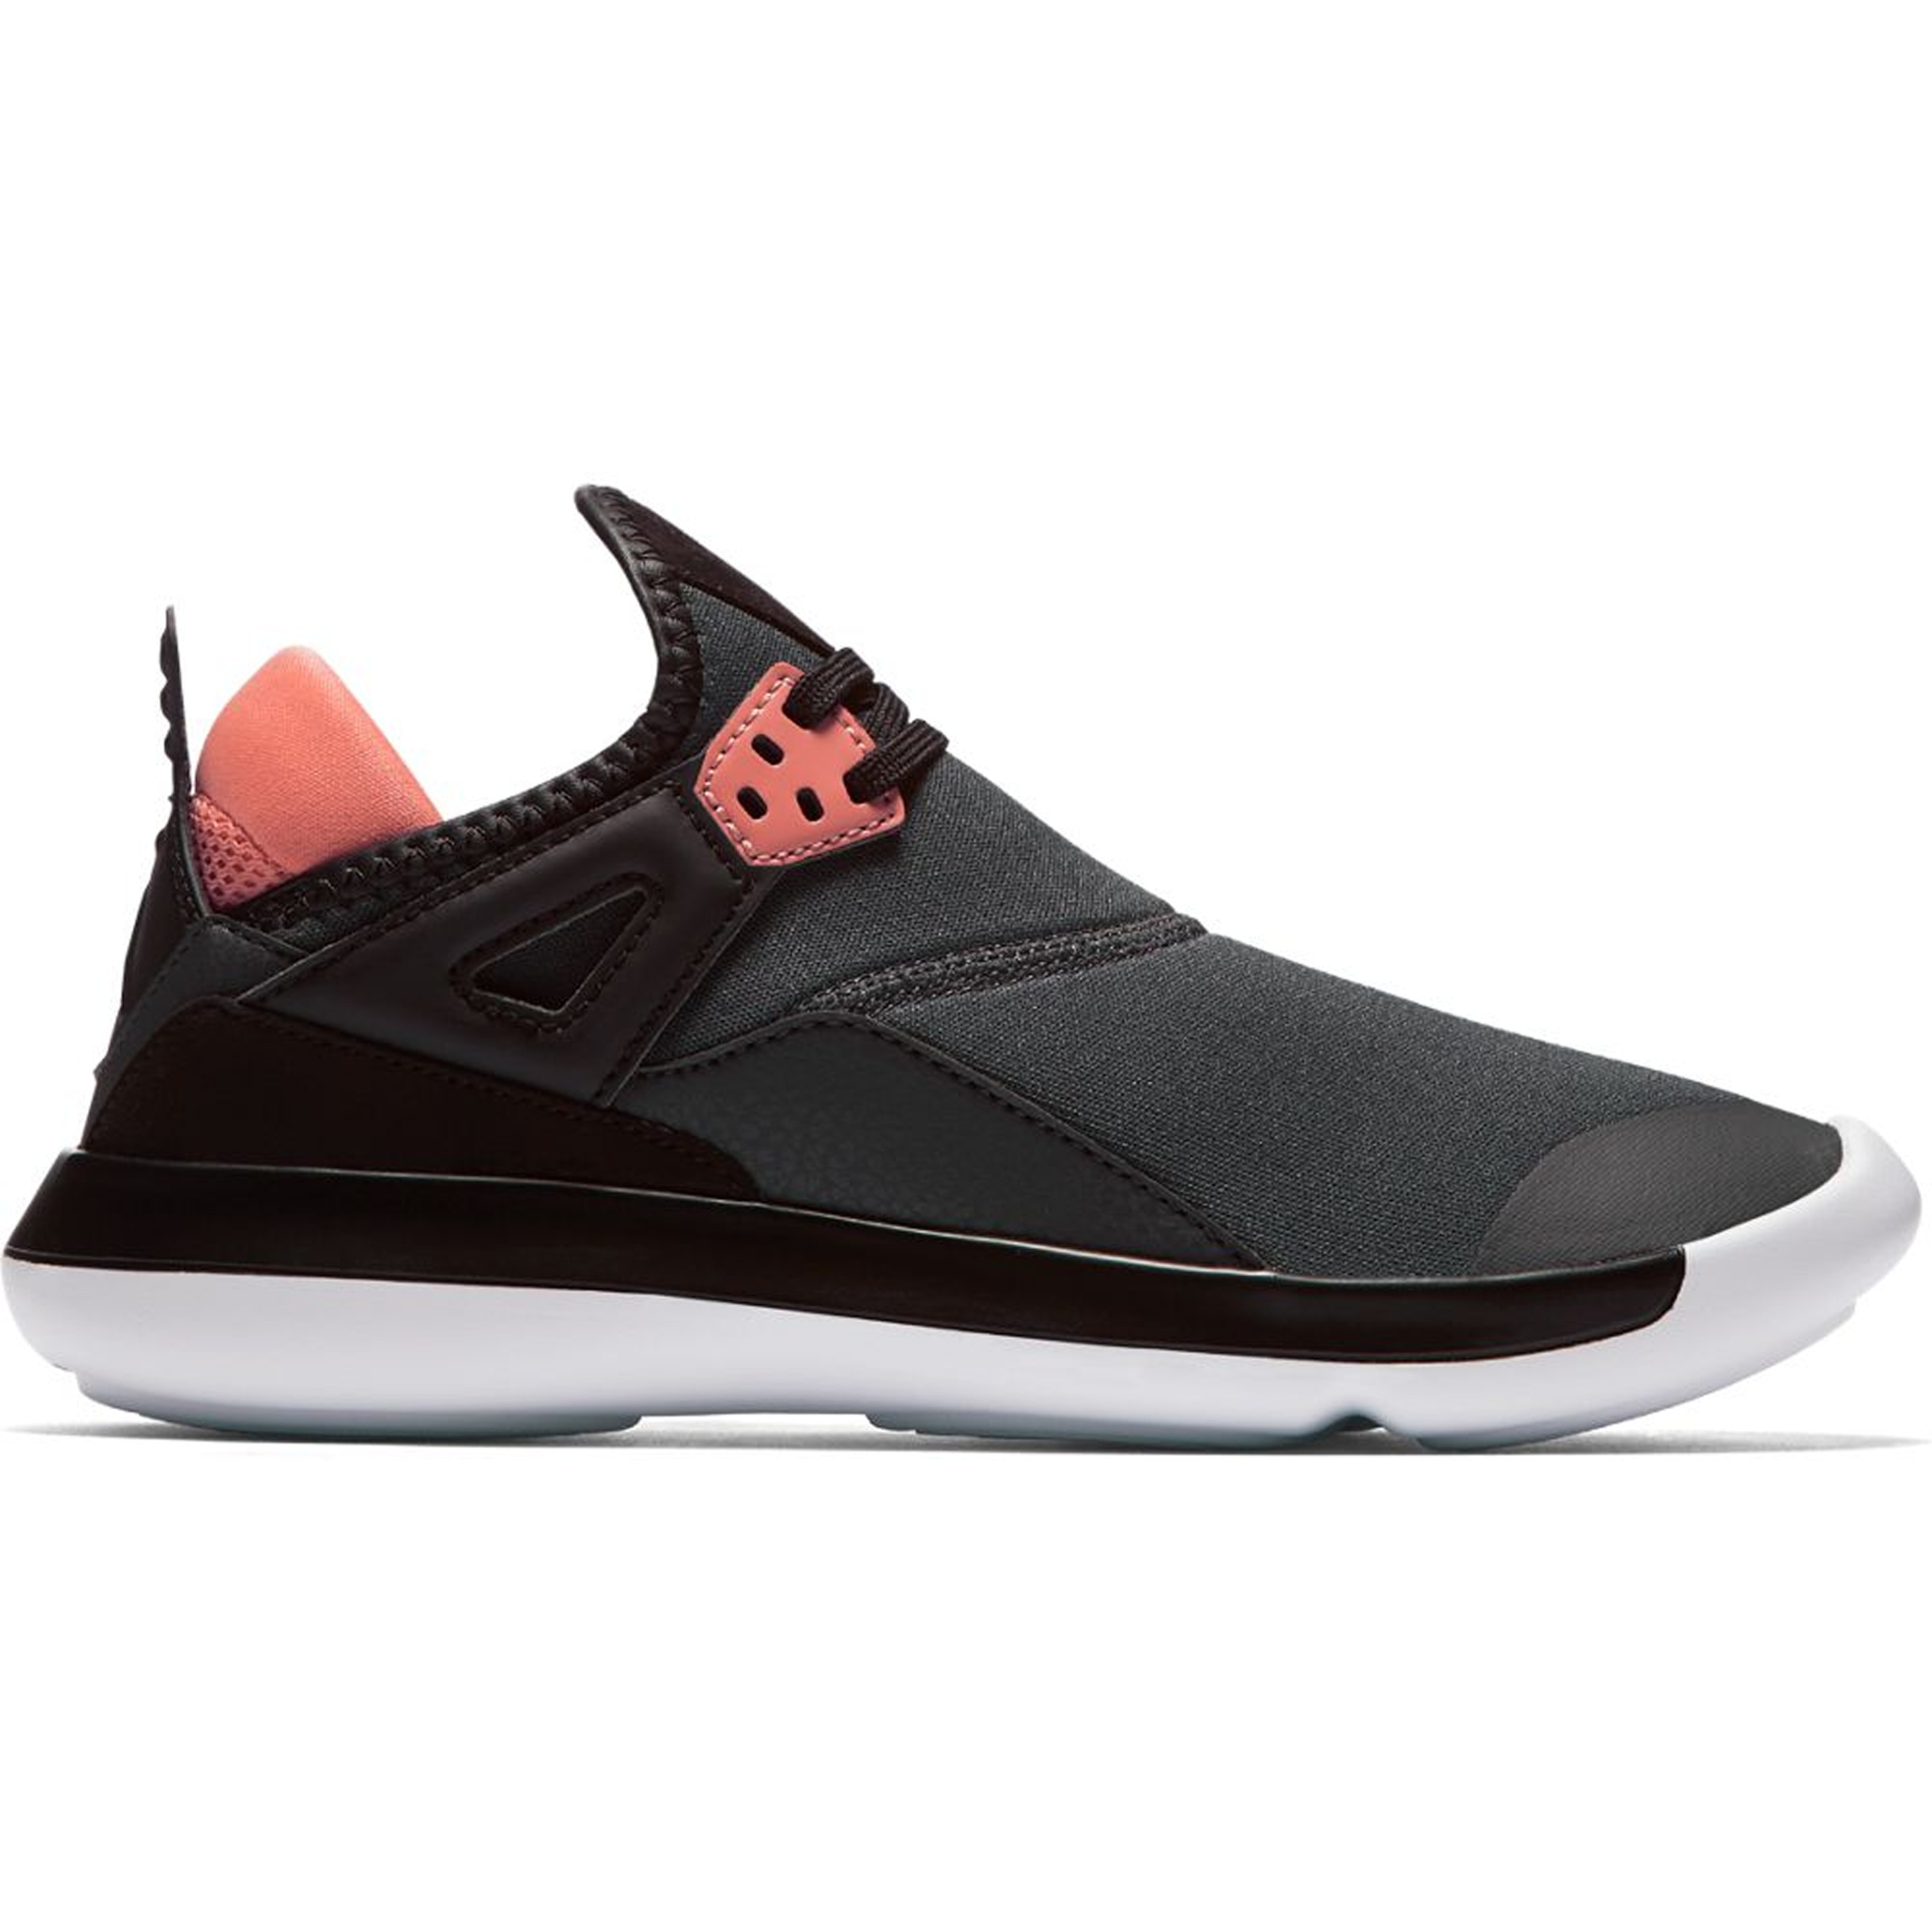 Jordan Fly 89 Anthracite Pink (GS) (AA4040-002)